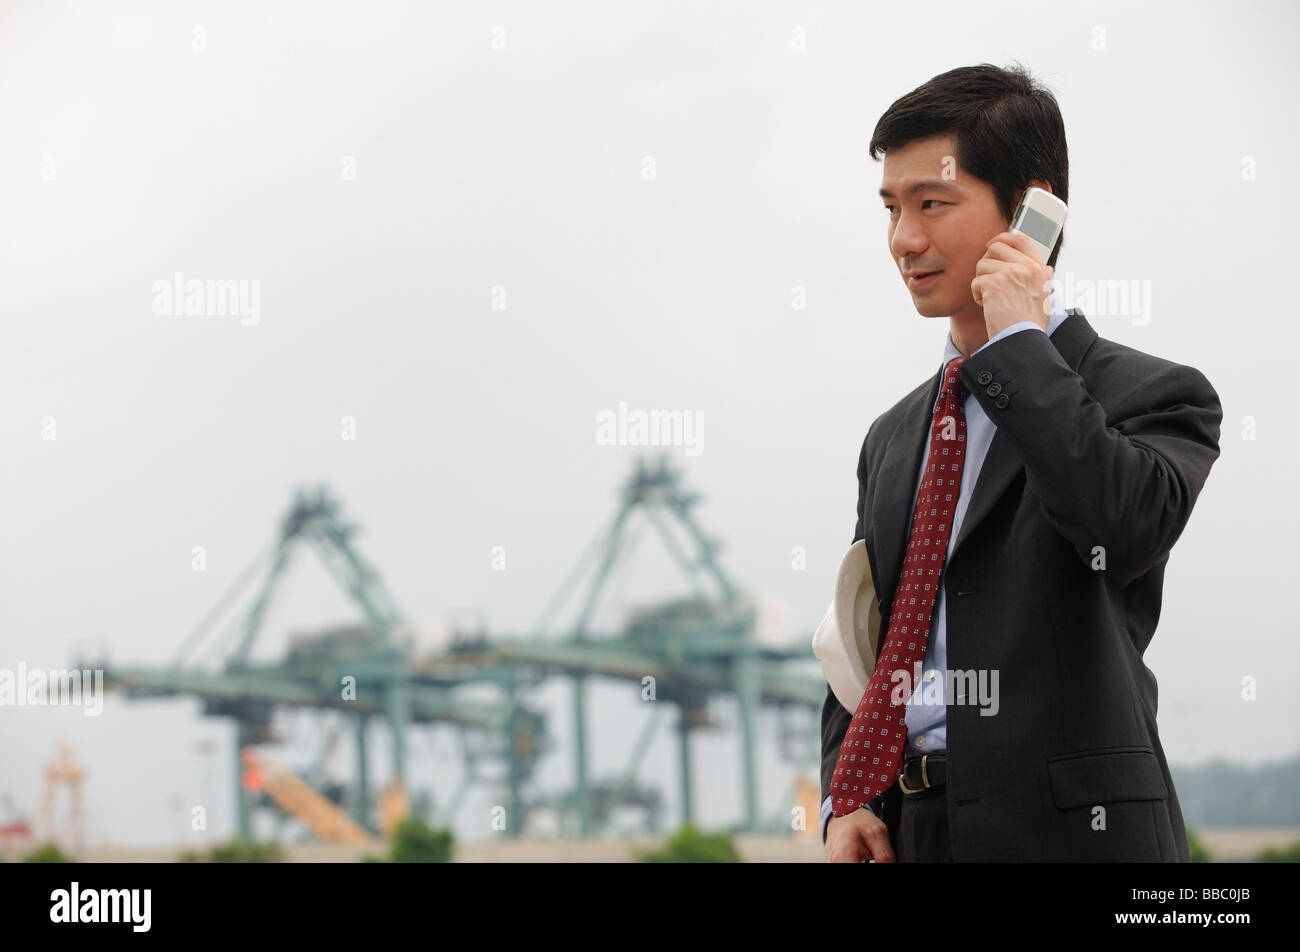 Businessman talking on the phone - Stock Image